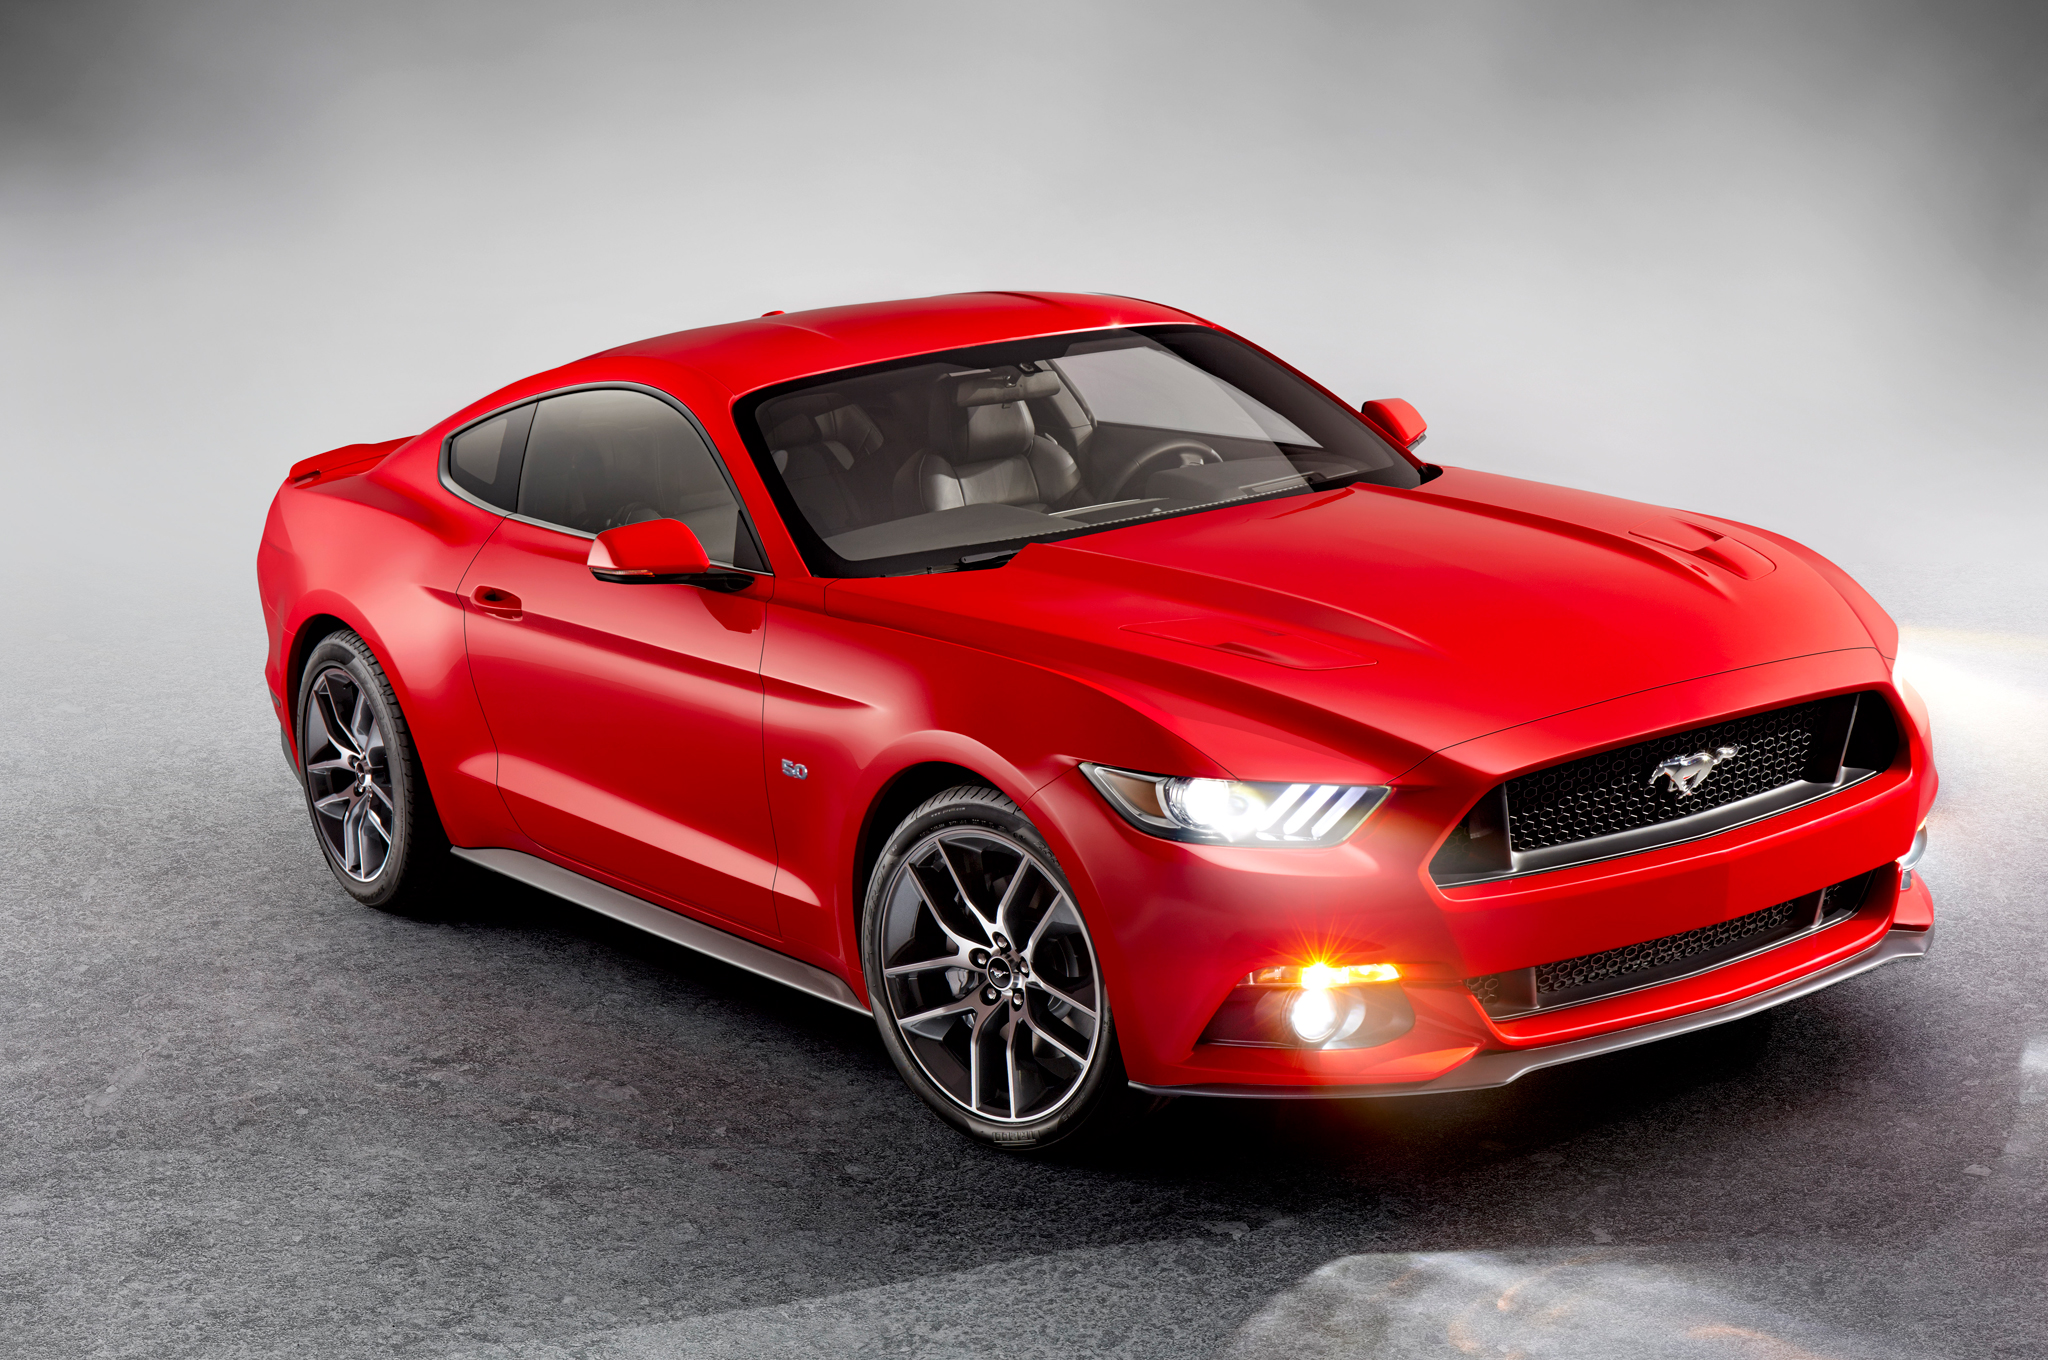 Winning barrett jackson bidder to get first retail 2015 ford mustang coupe